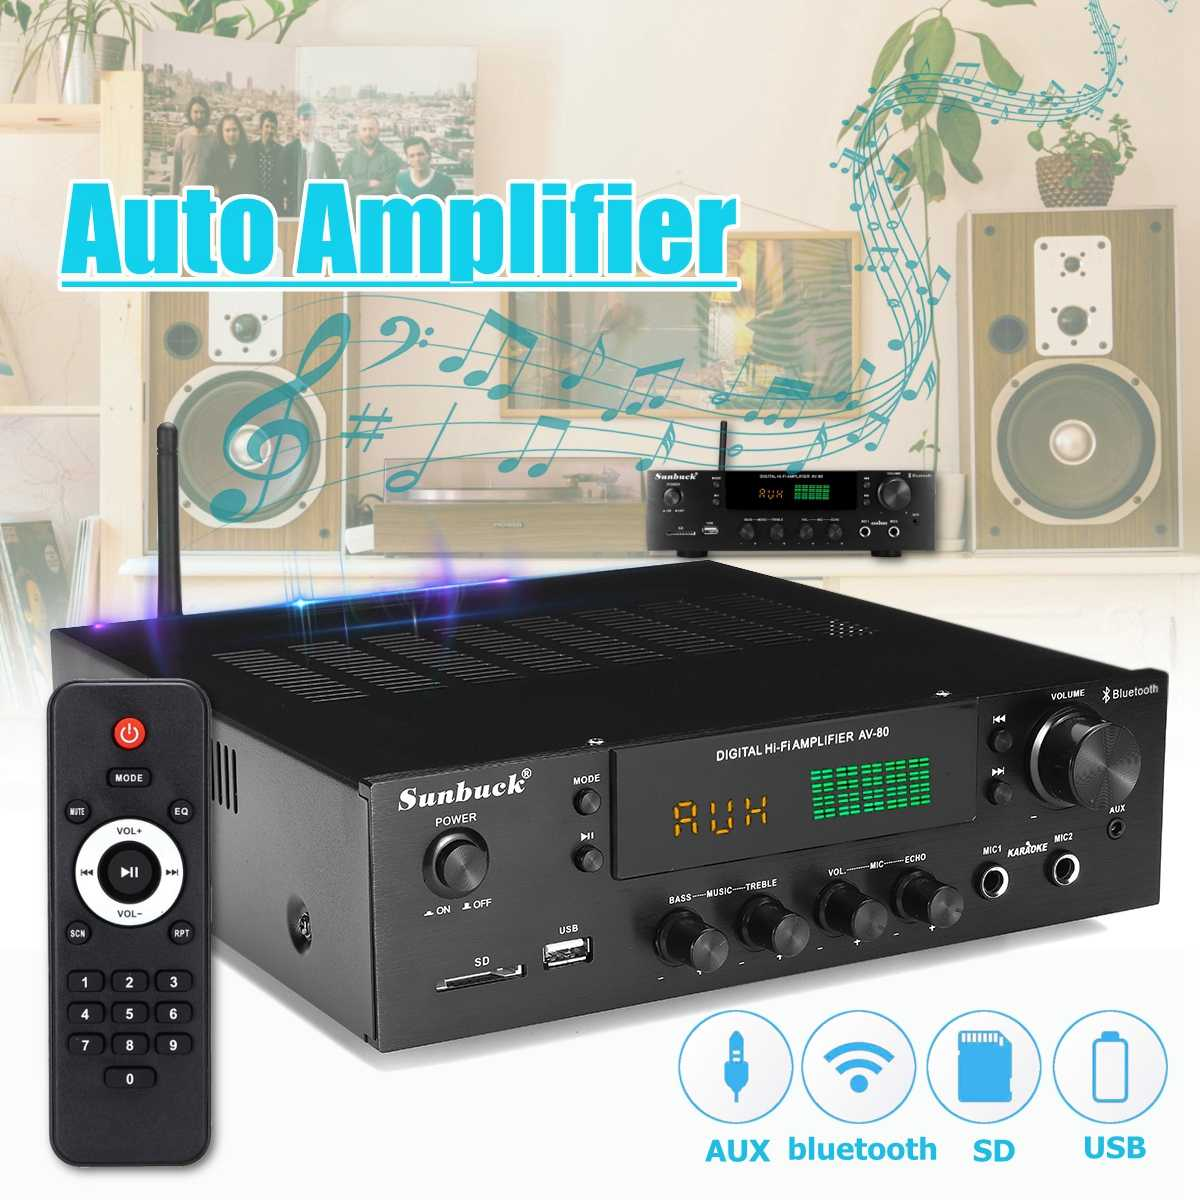 220V-240V 1388 2*200W bluetooth Stereo 2.0 Amplifier HiFi Power Remote Control USB SD Aux Mic Input Auto Amplifier